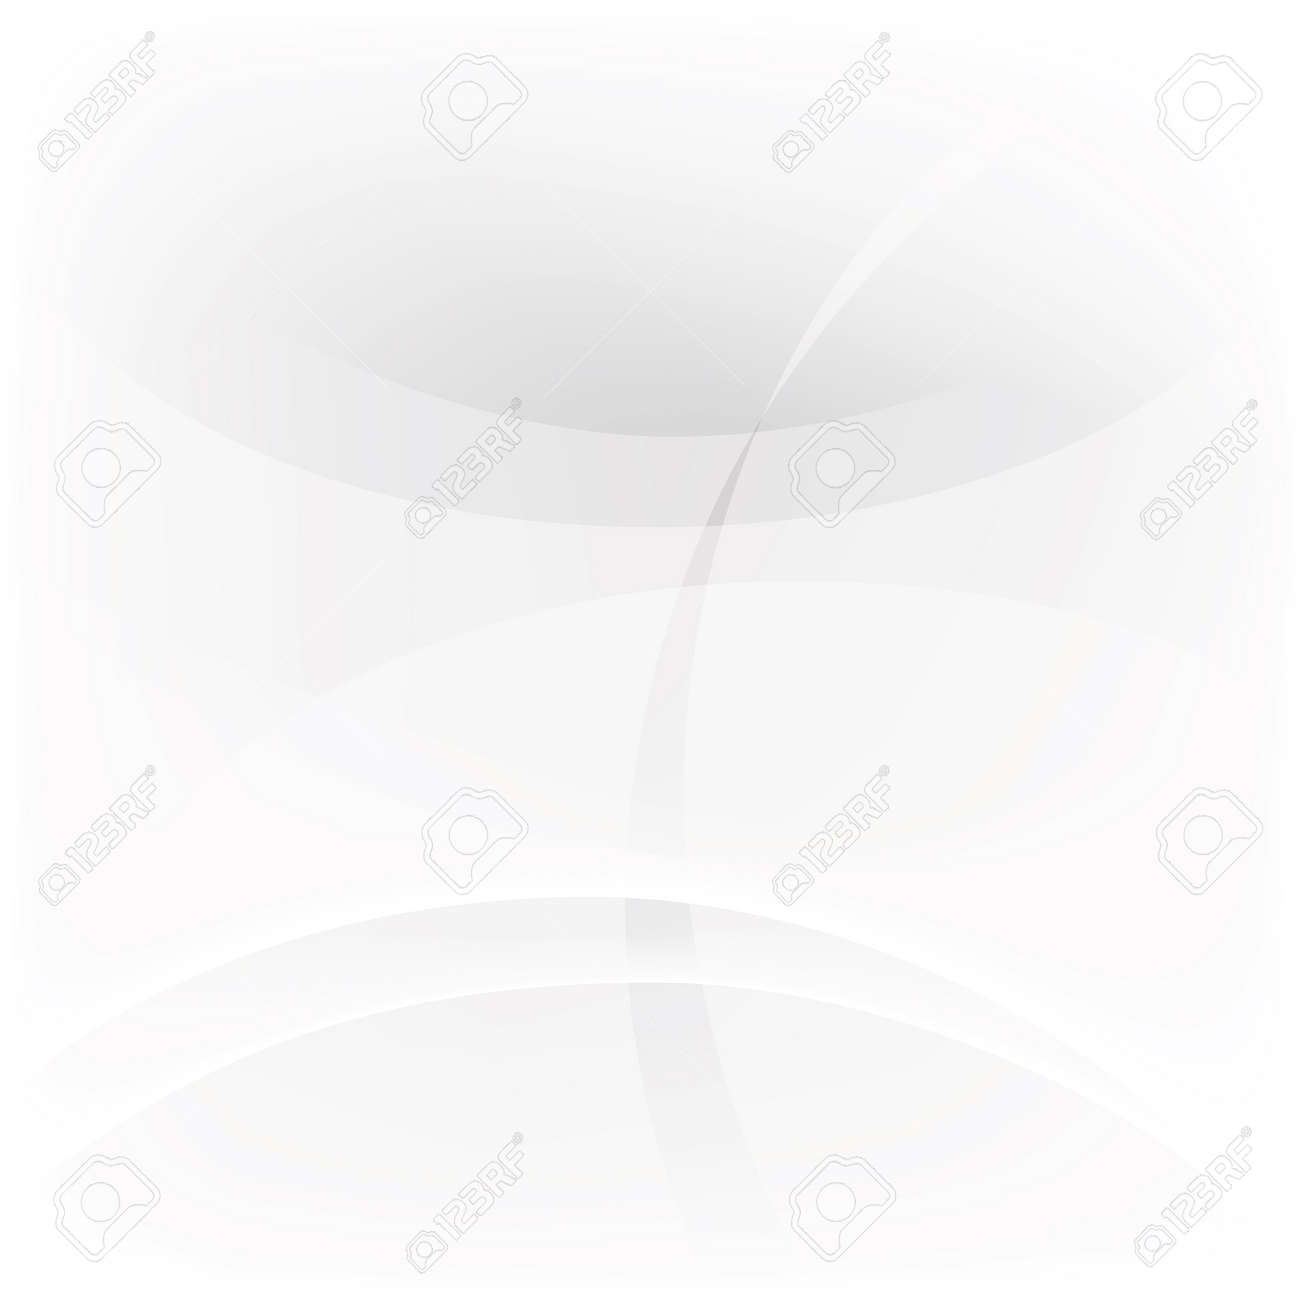 Silver abstract background - 16942784